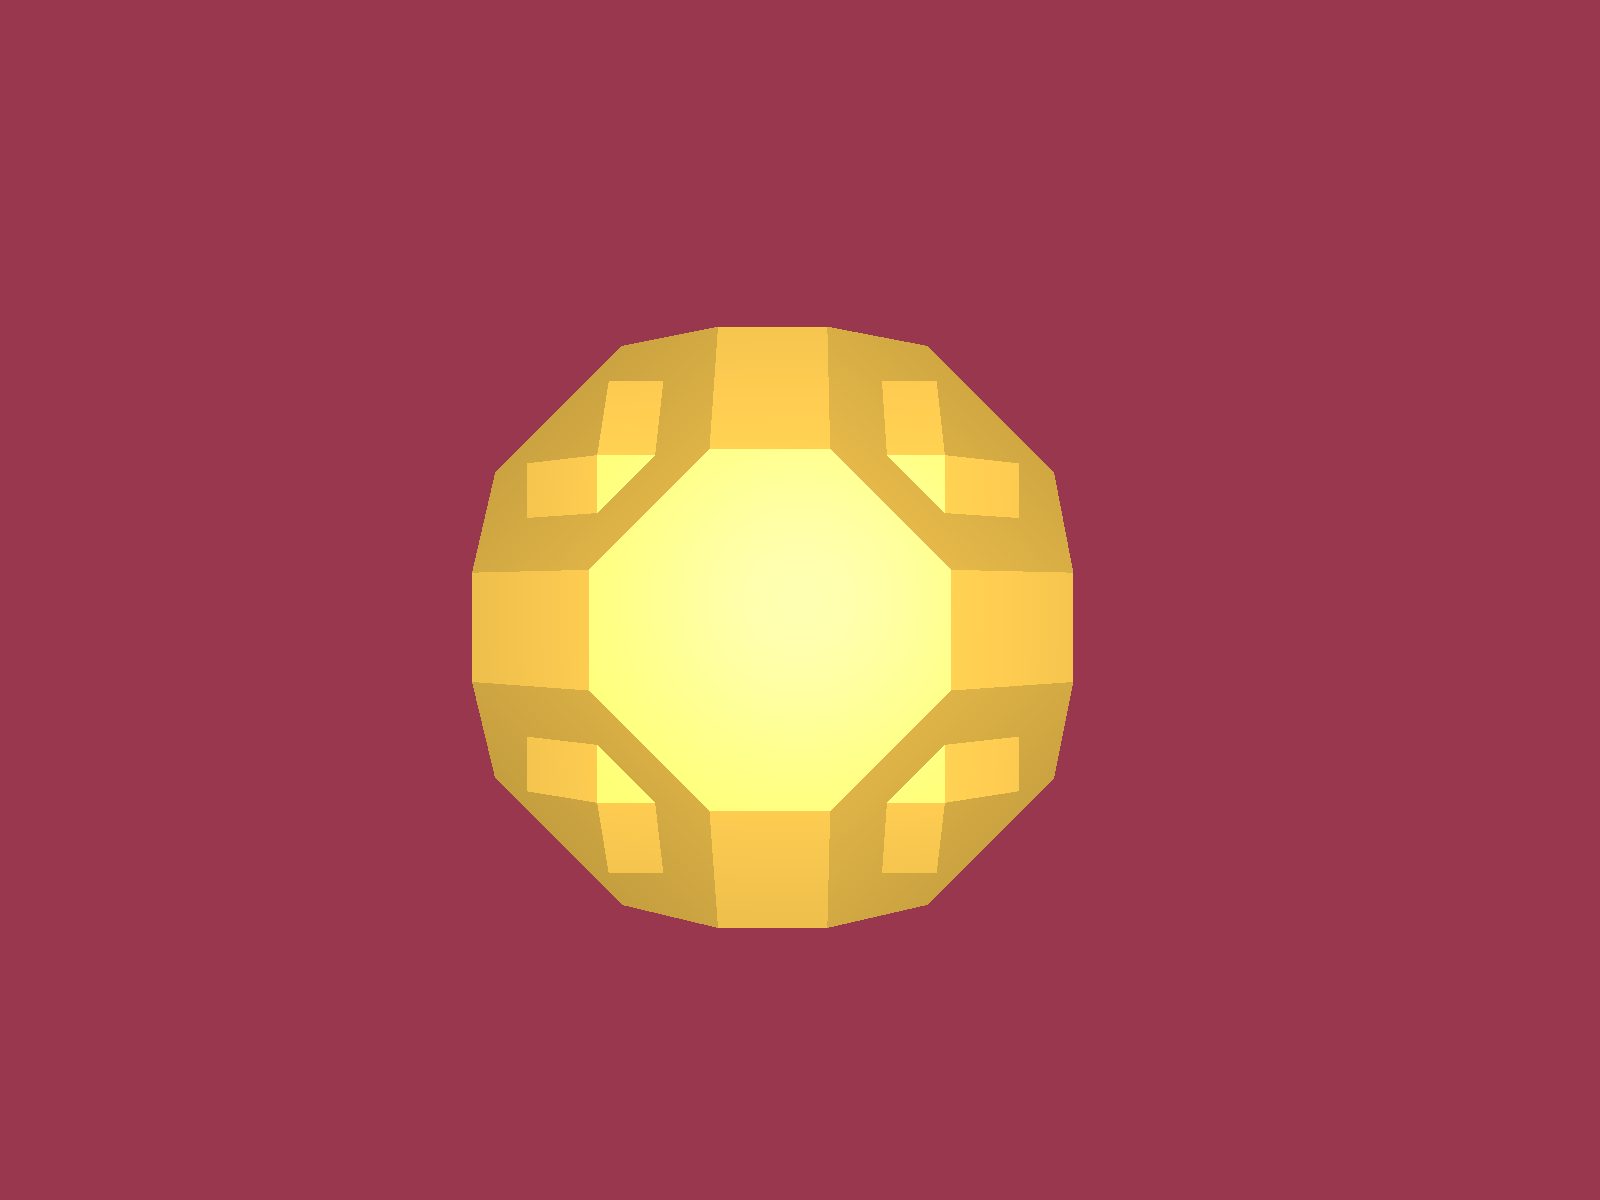 Rendering of a faceted sphere